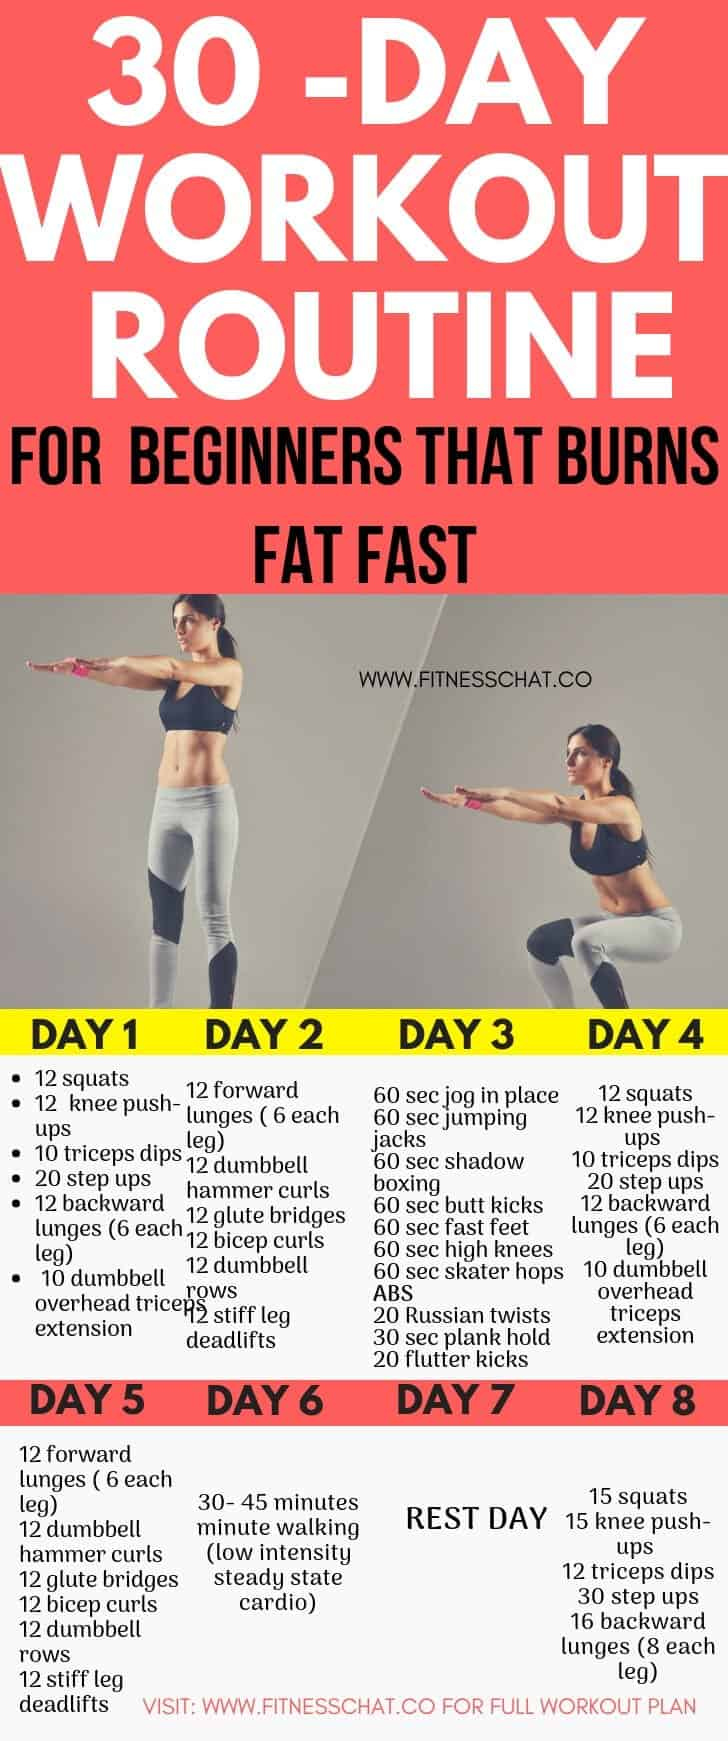 30-Day Workout Routine for Beginners that burns fat fast